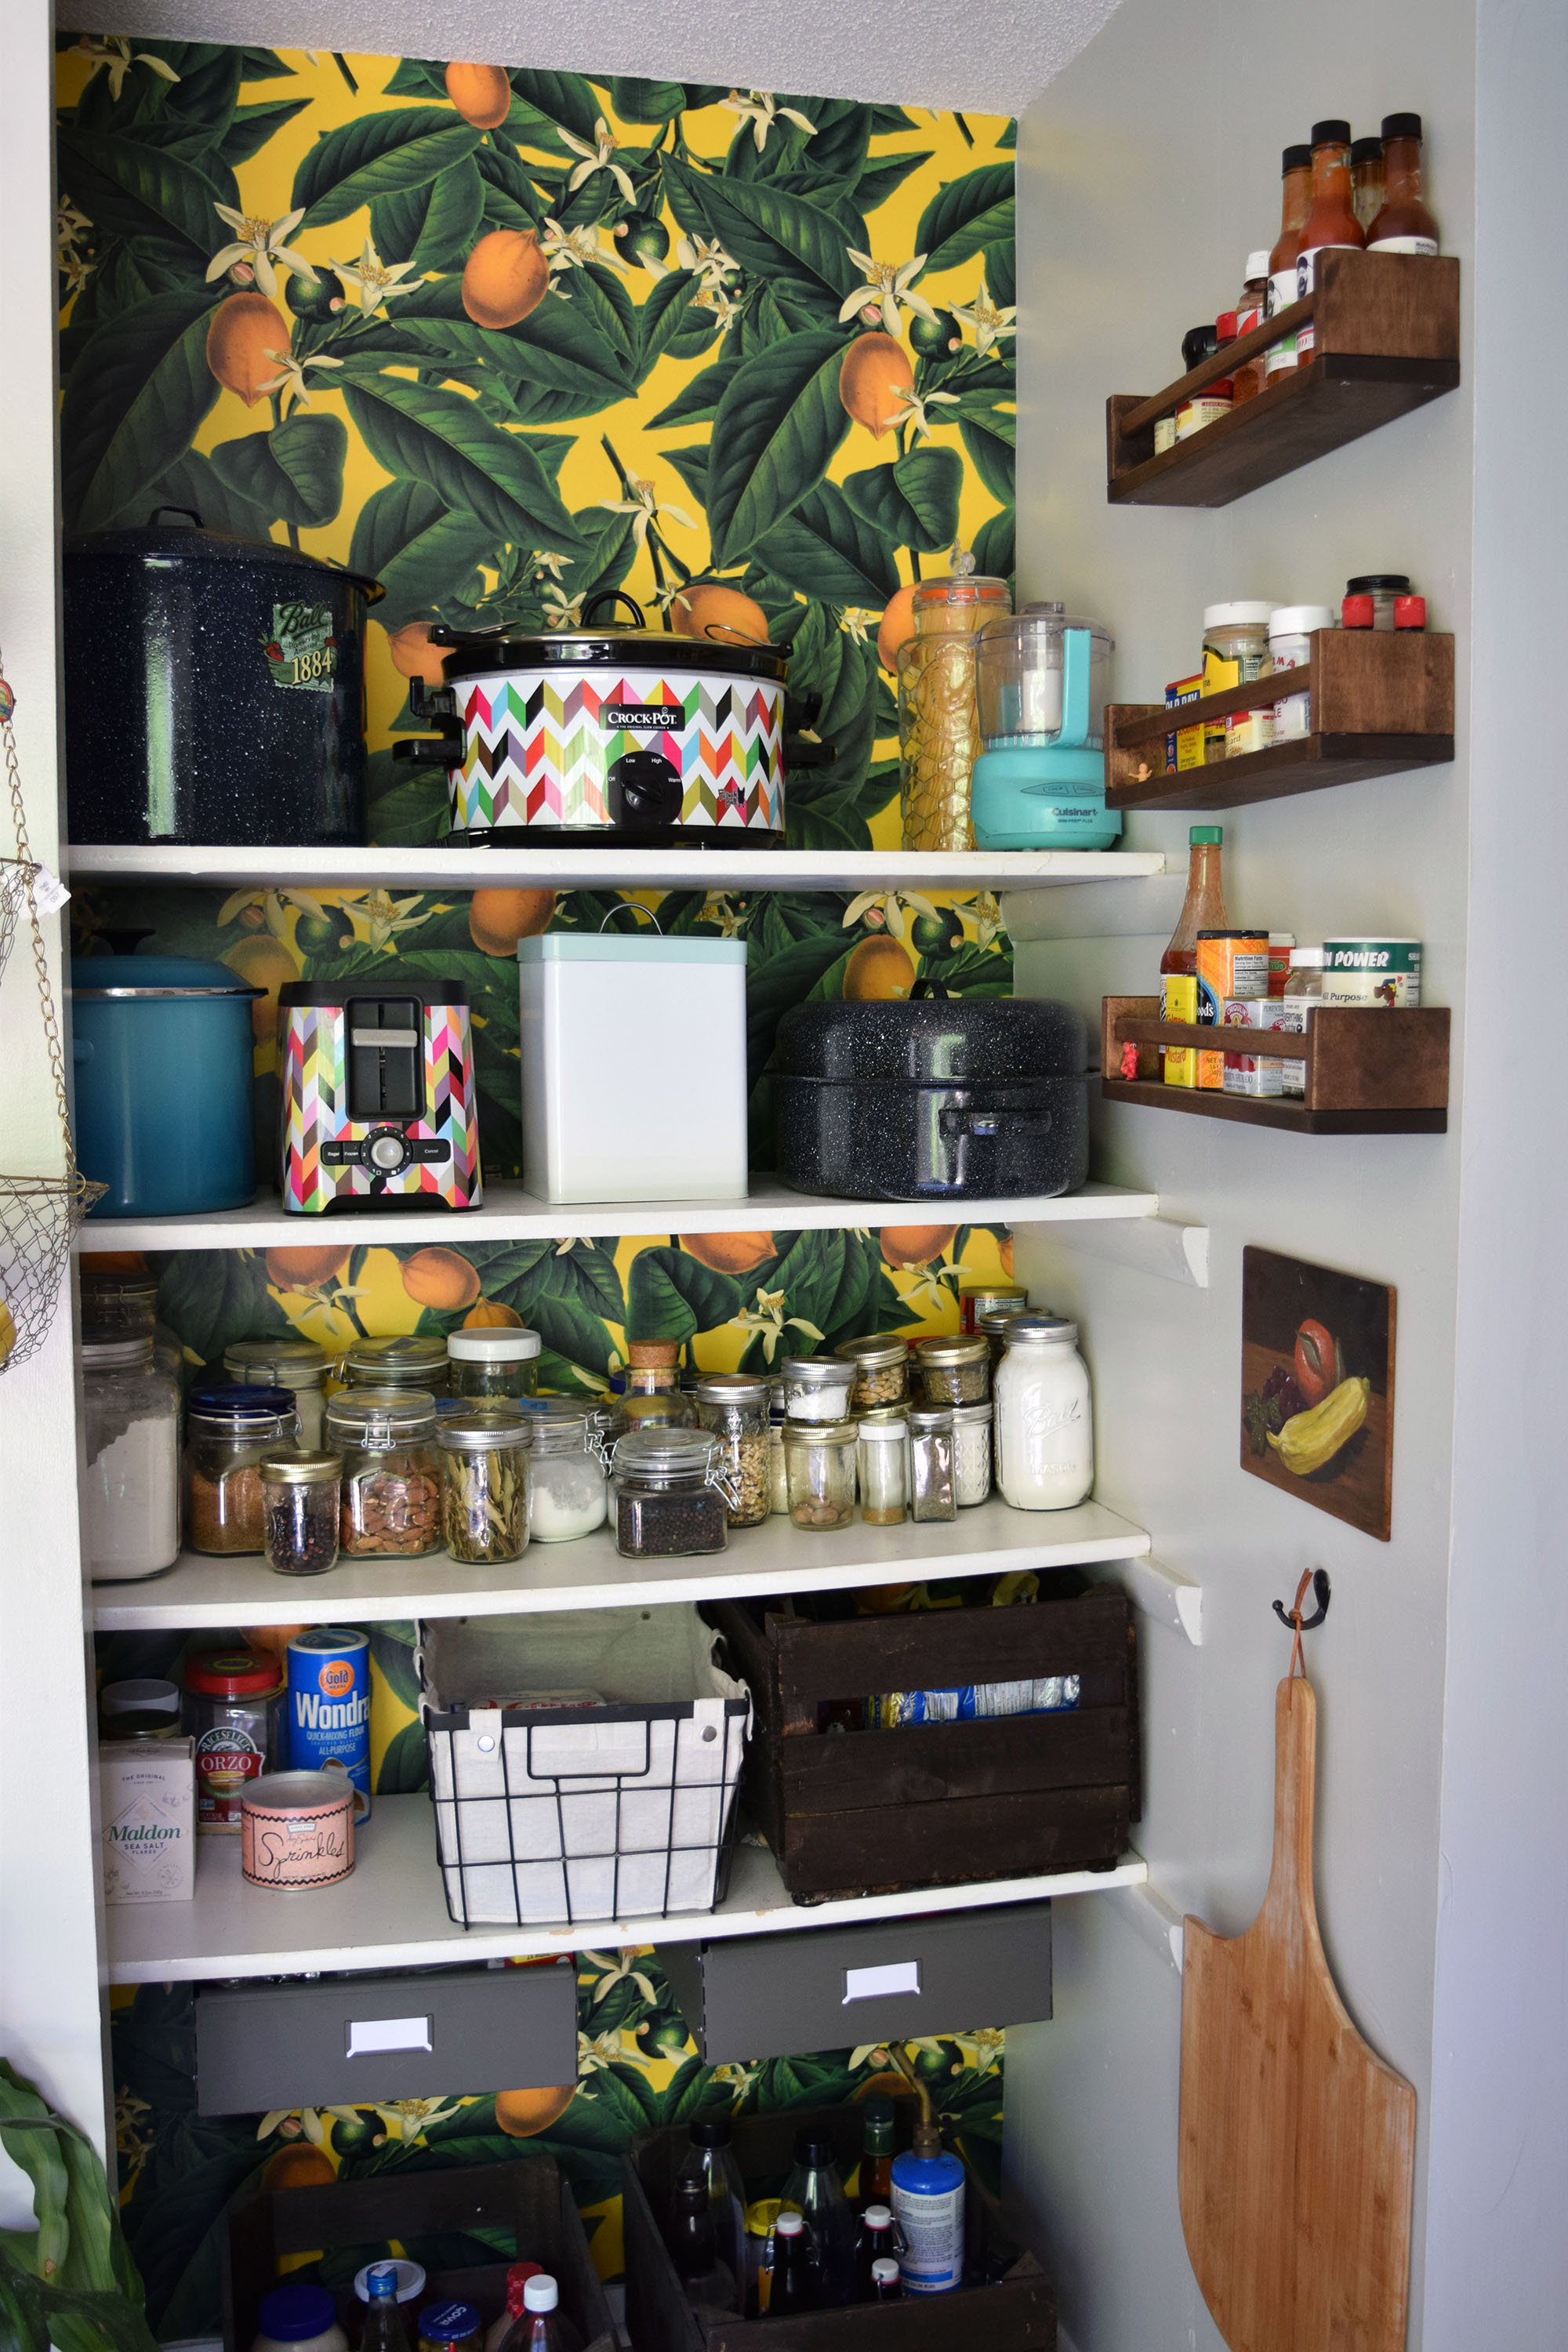 Lemon Wallpaper-Lined Pantry